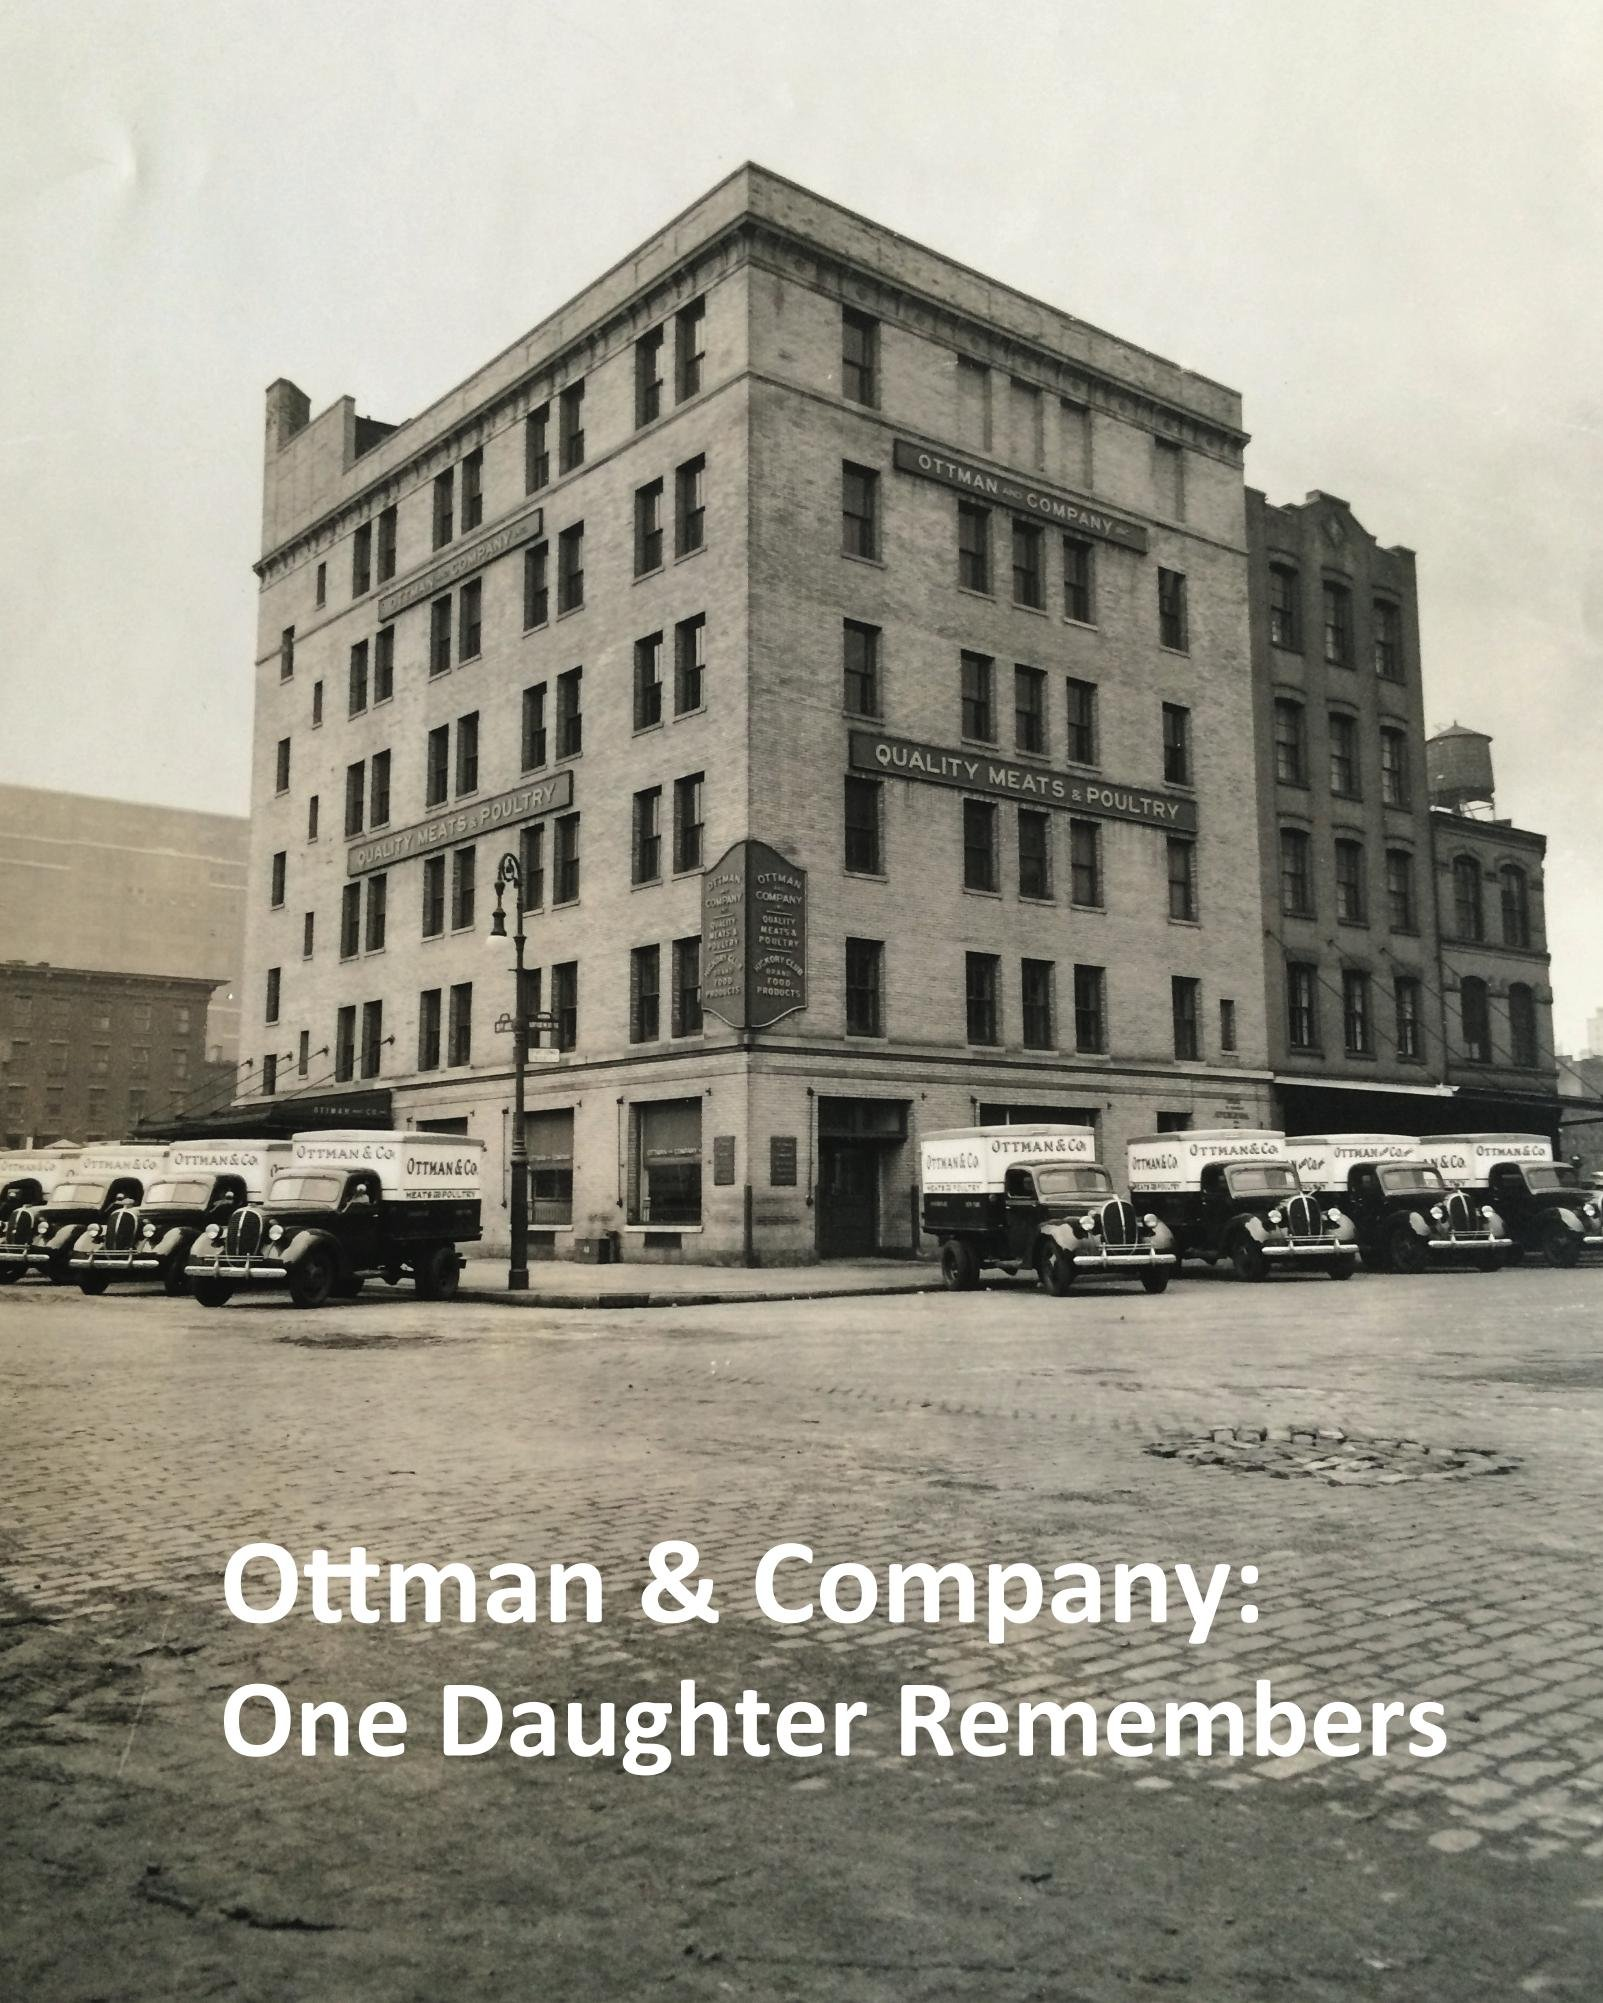 Ottman and Company: One Daughter Remembers